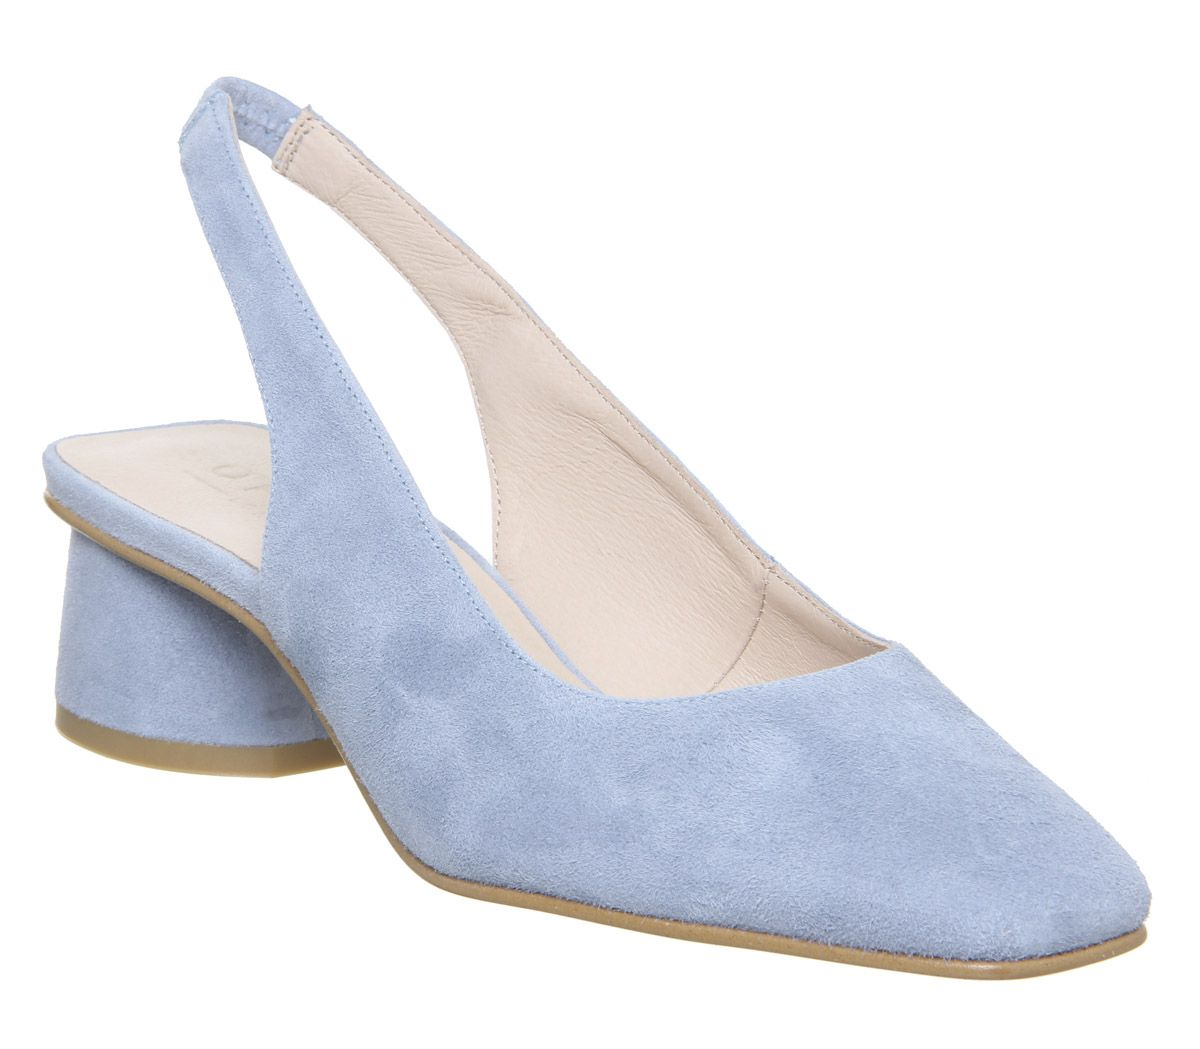 045d55df1b Office Manners Slingback Flared Heel Court Pale Blue Suede - Mid Heels